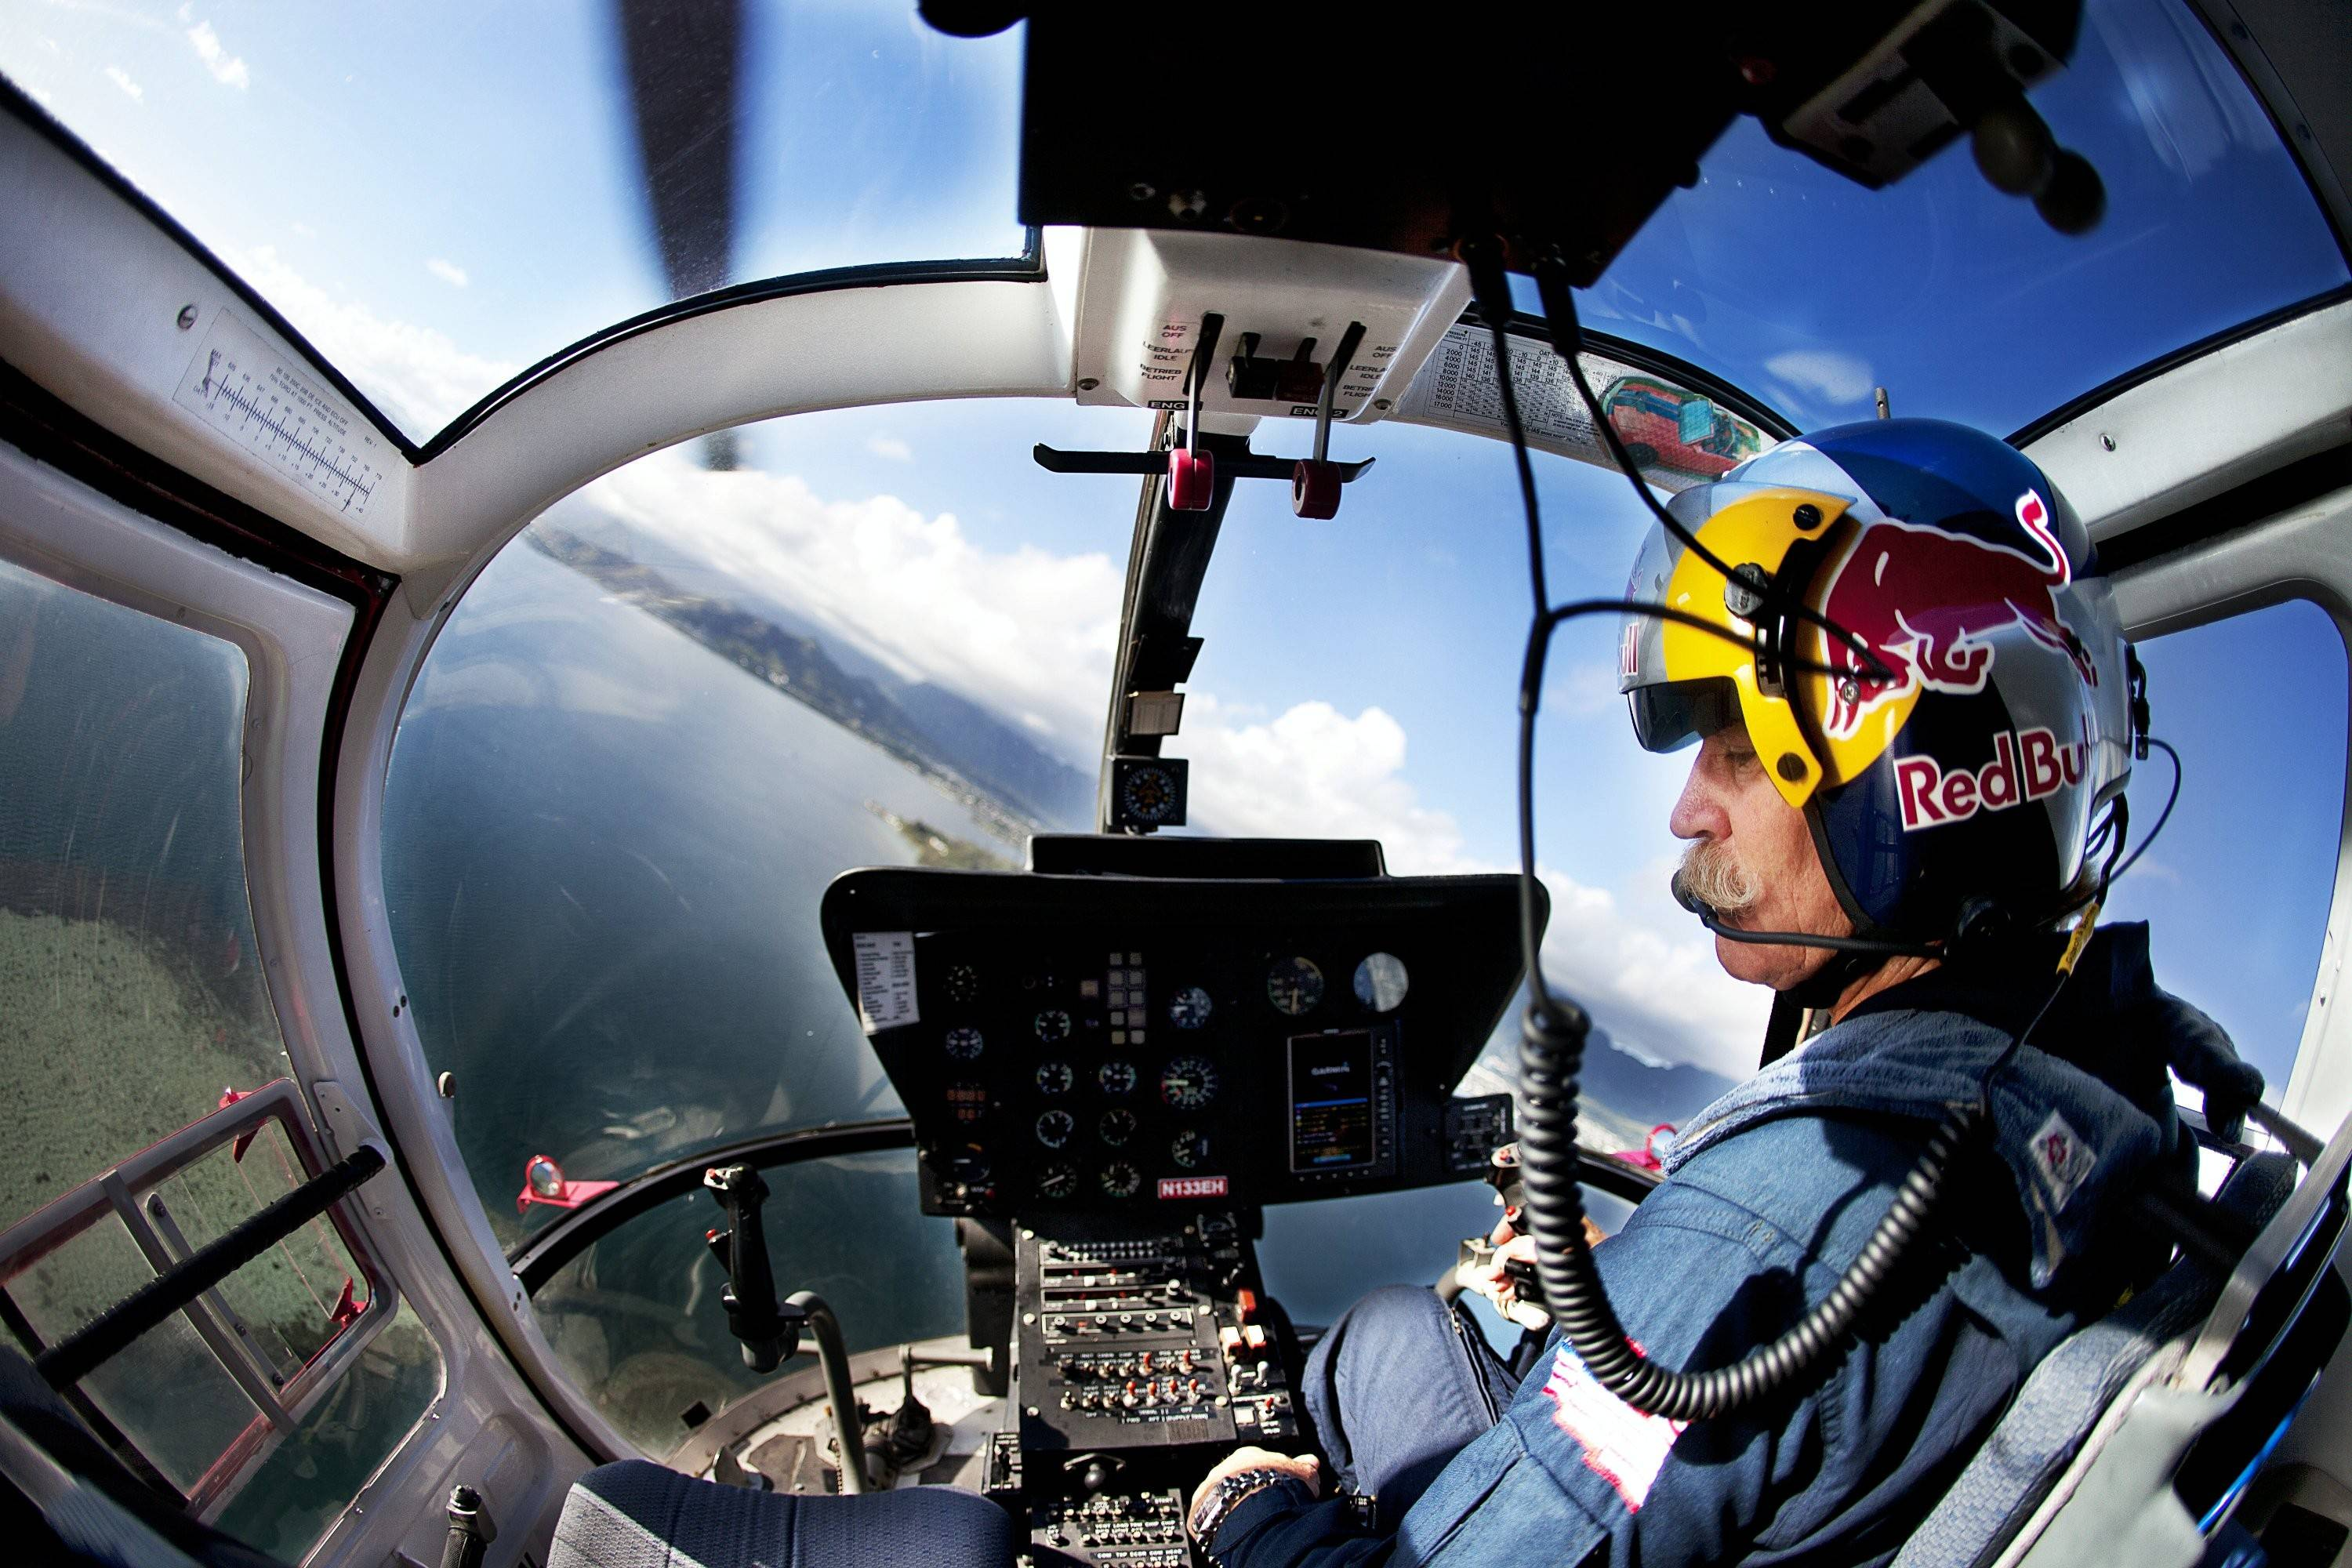 Chuck Aaron will perform in the Red Bull helicopter for the Chicago Air & Water Show. He is the only civilian pilot licensed to perform helicopter aerobatics in the United States.